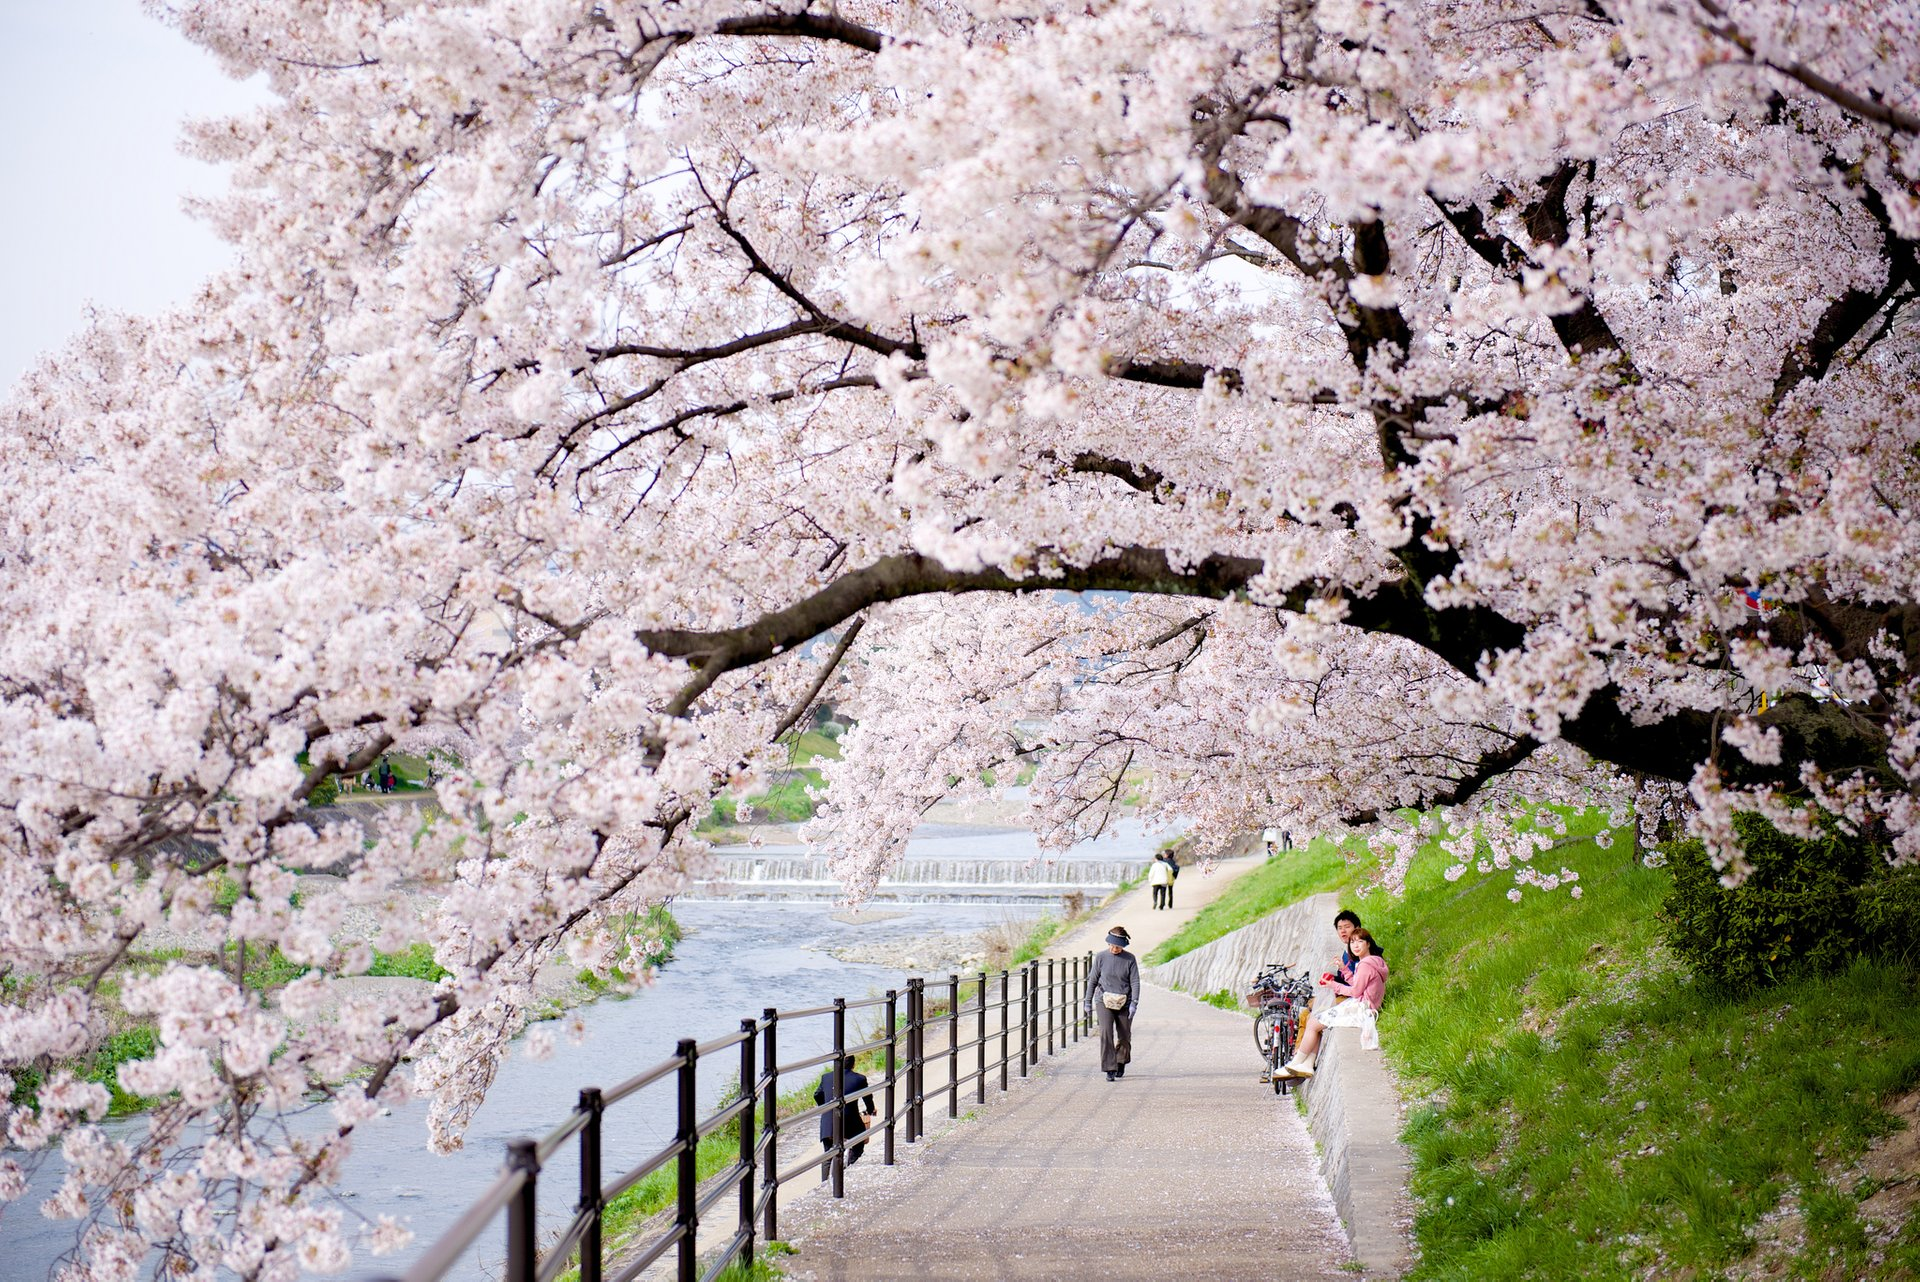 Cherry Blossom in Kyoto 2019 - Best Time